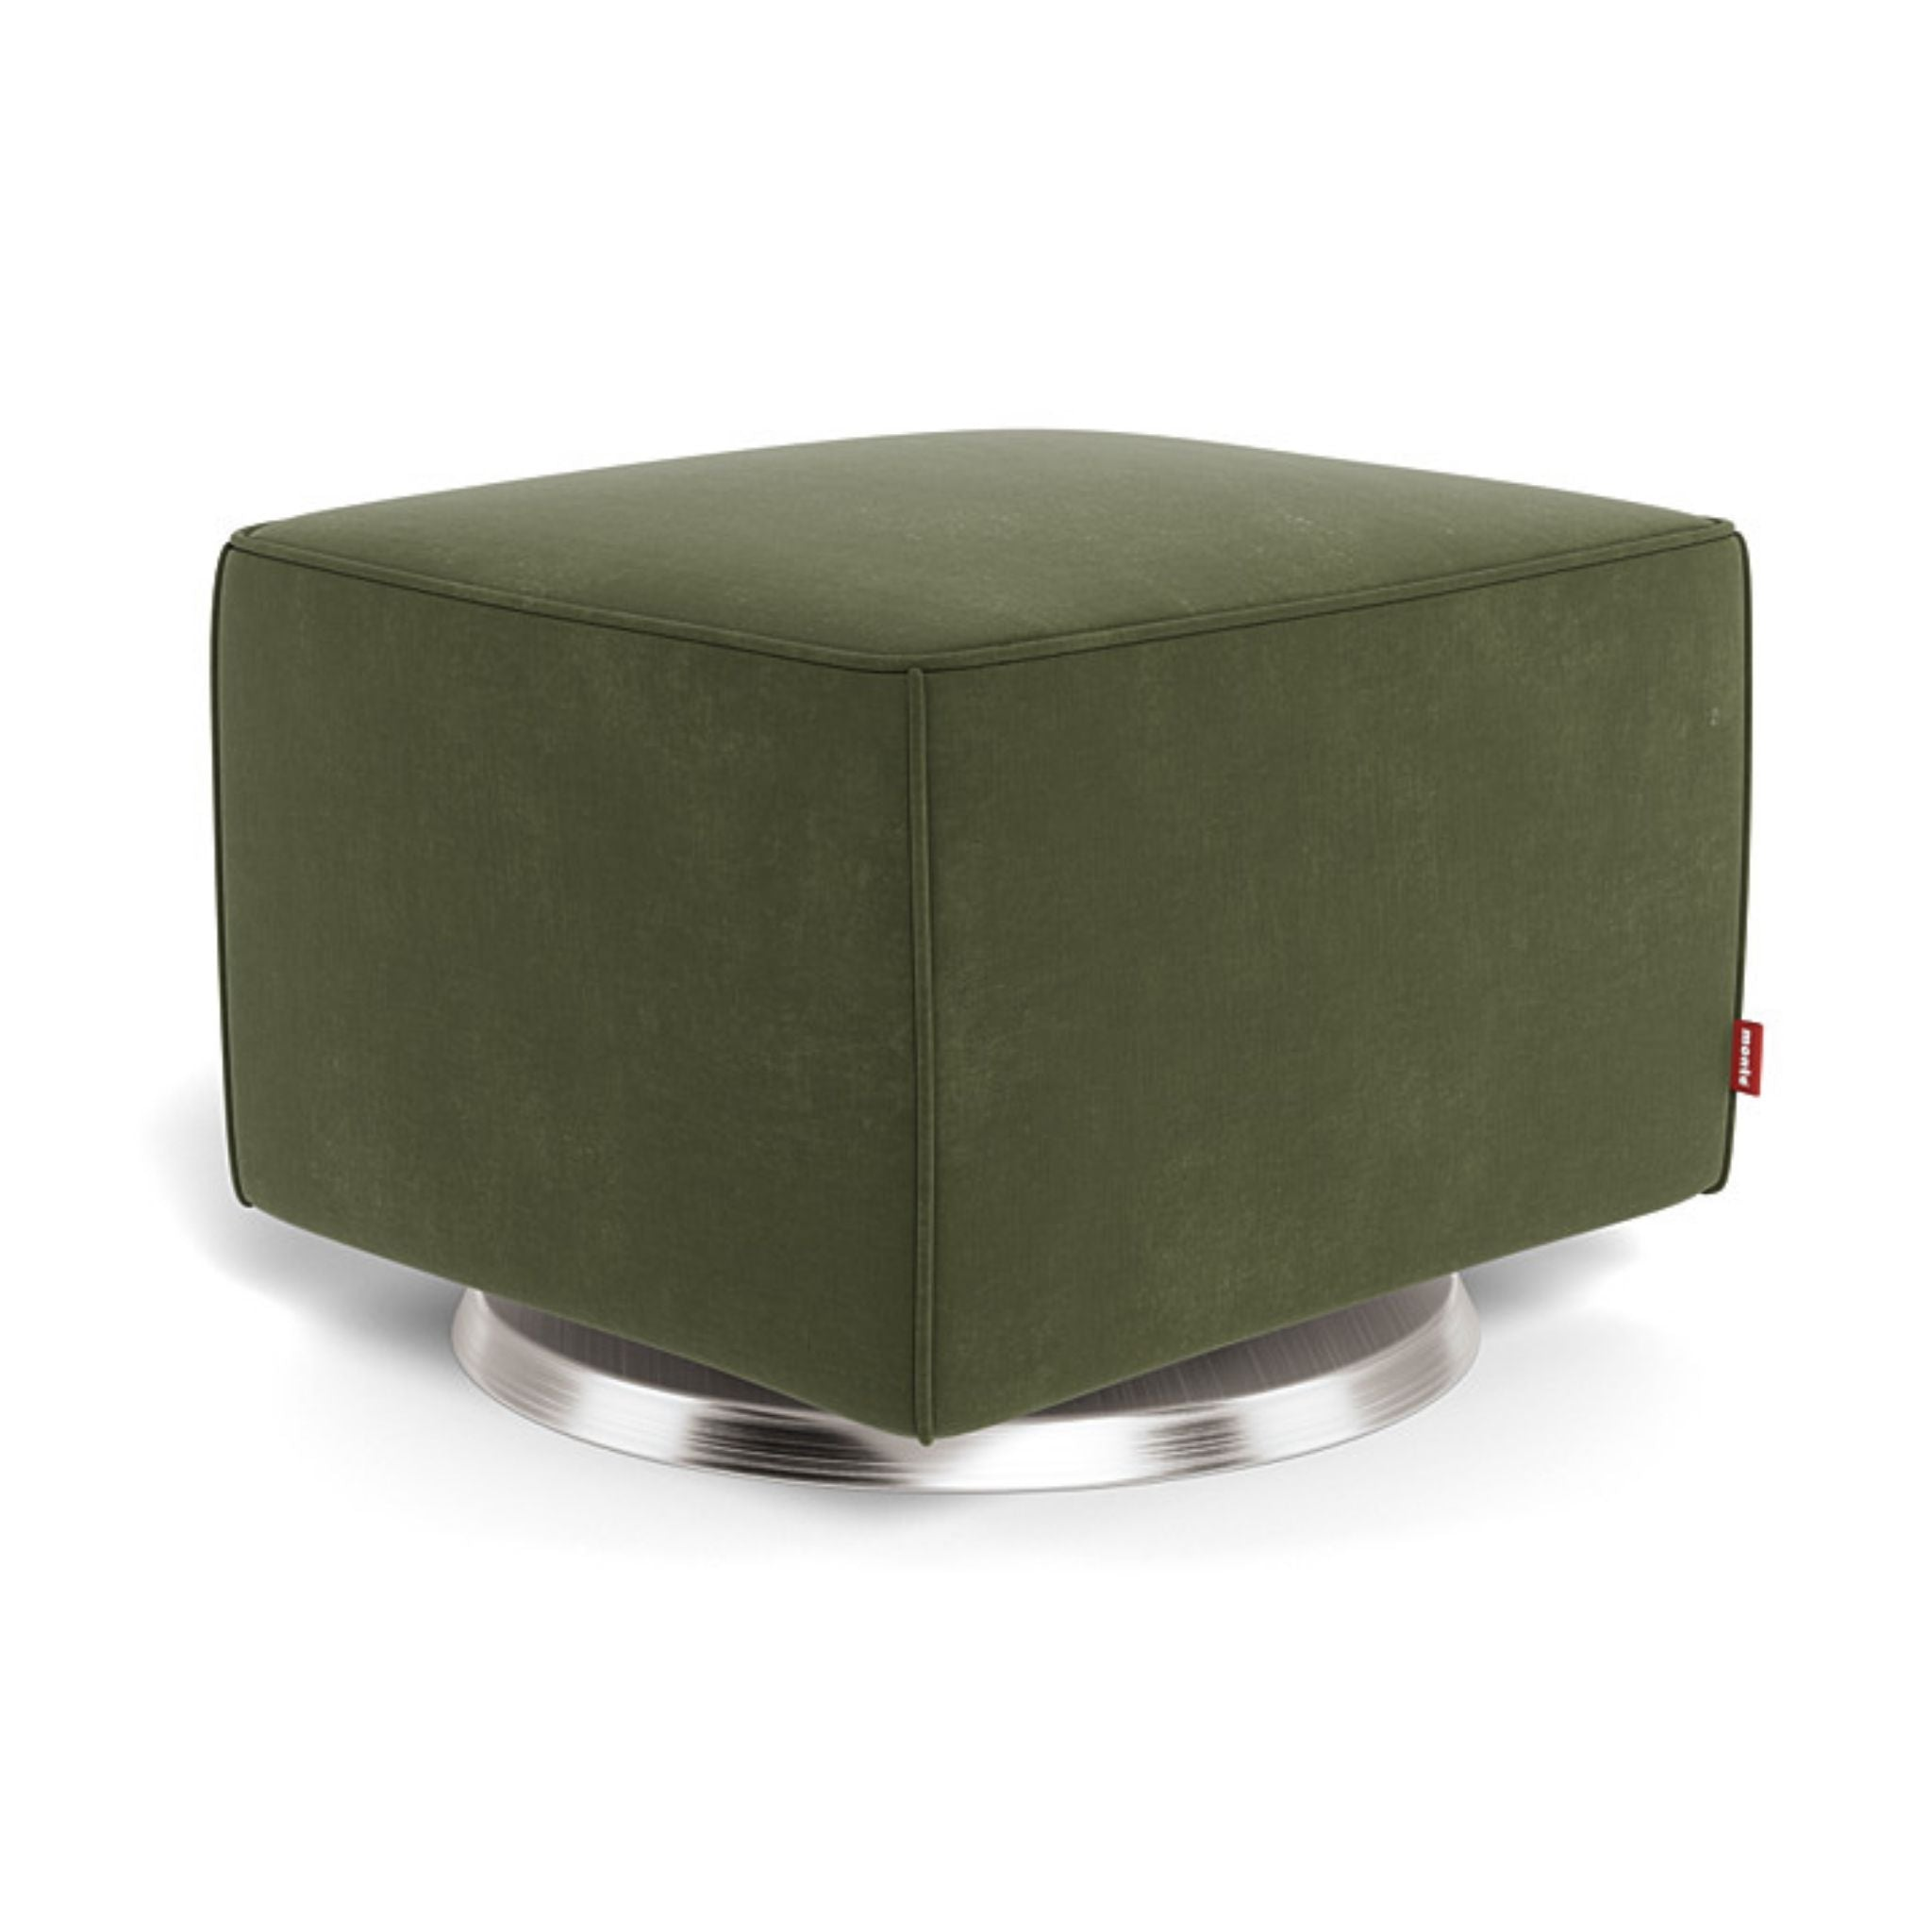 Luca Glider Ottoman | Stainless Steel Swivel Base